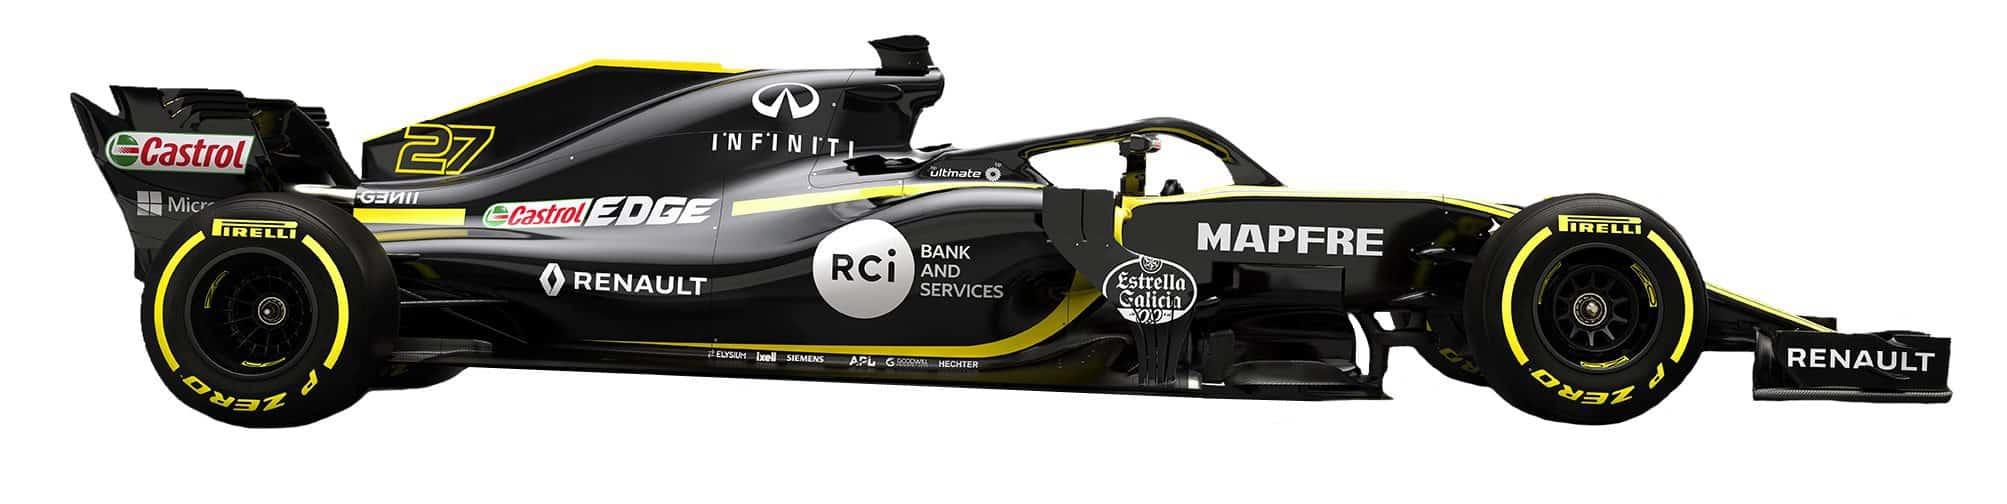 Renault RS18 F1 2018 side white studio Photo Renault MAXF1net